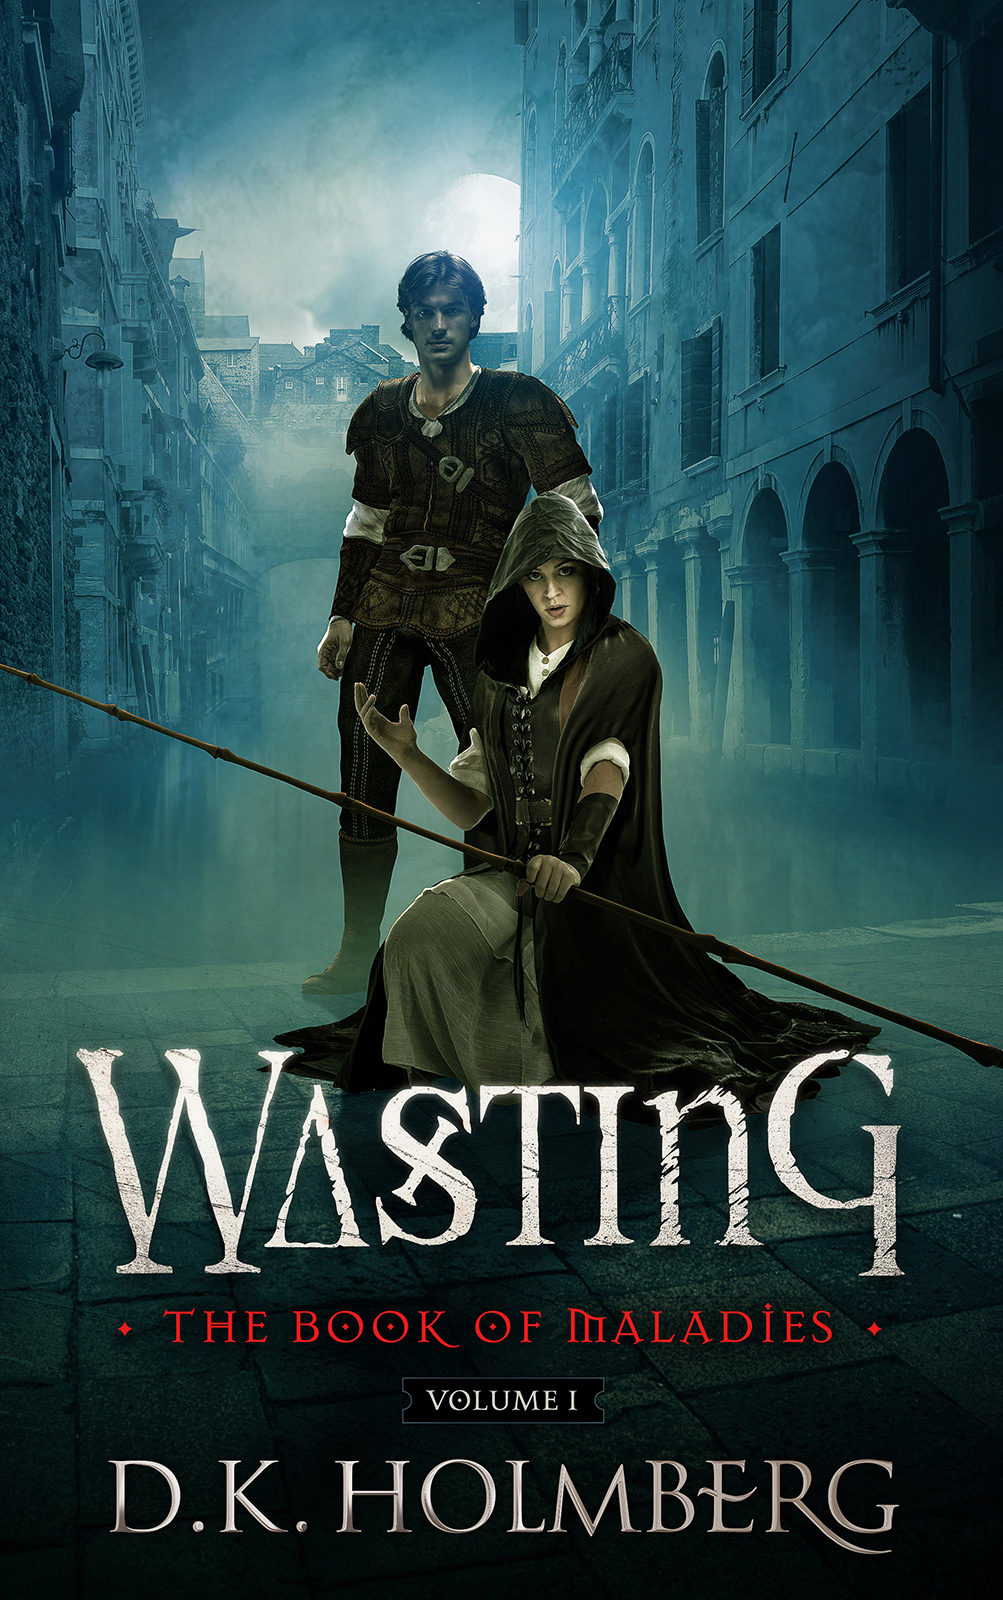 Wasting by DK Holmberg